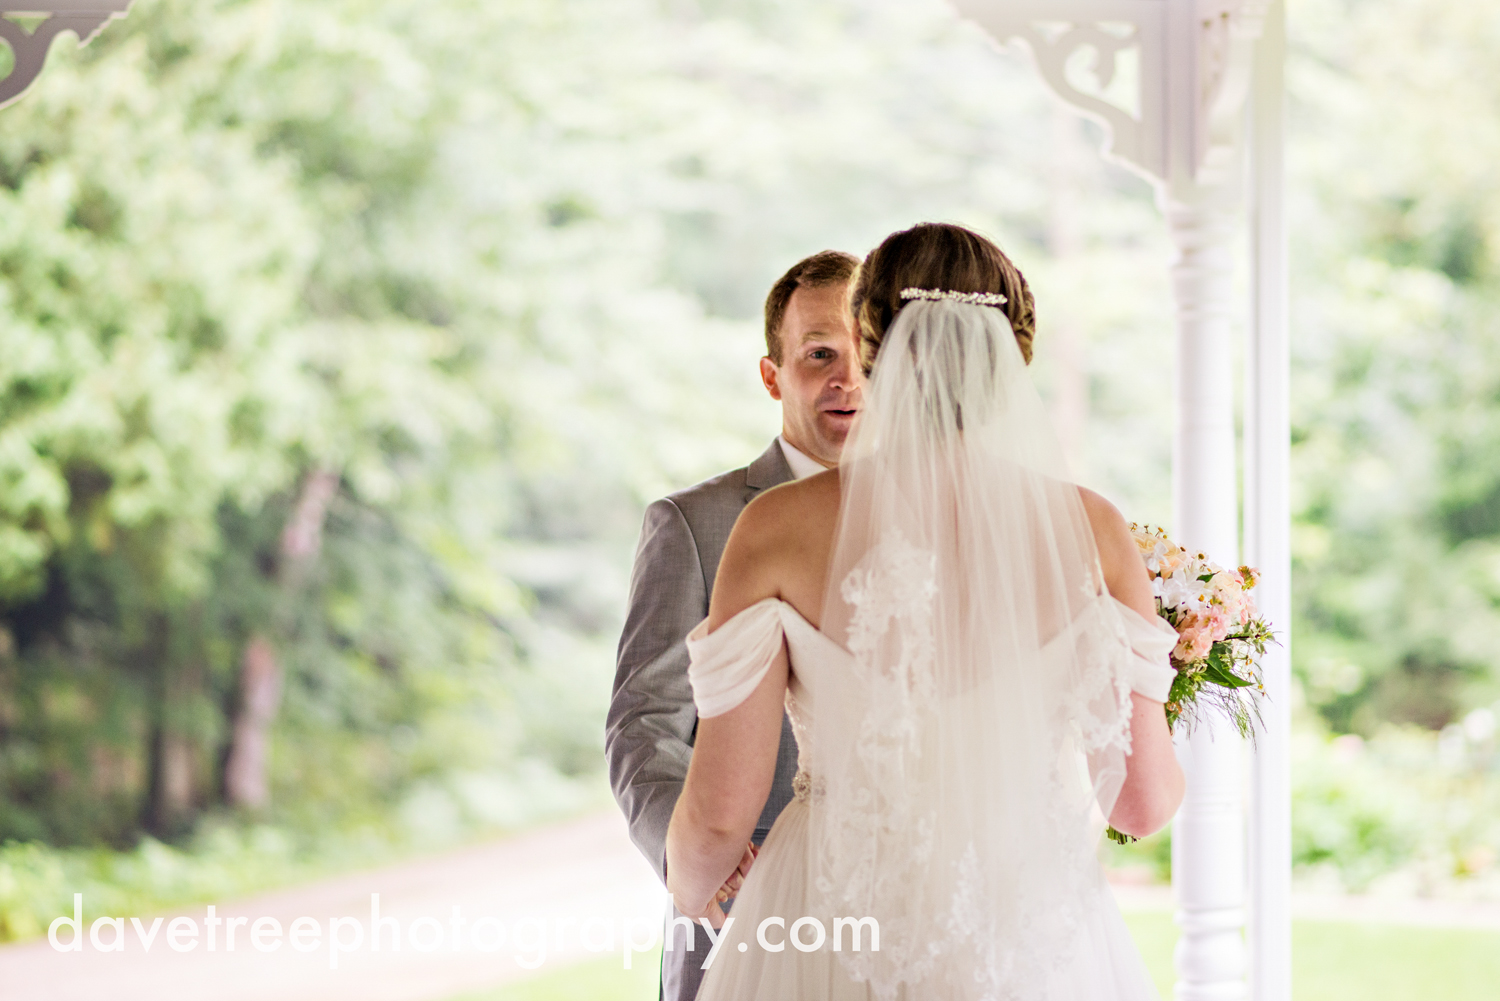 grand_haven_wedding_photographer_weaver_house_wedding_163.jpg